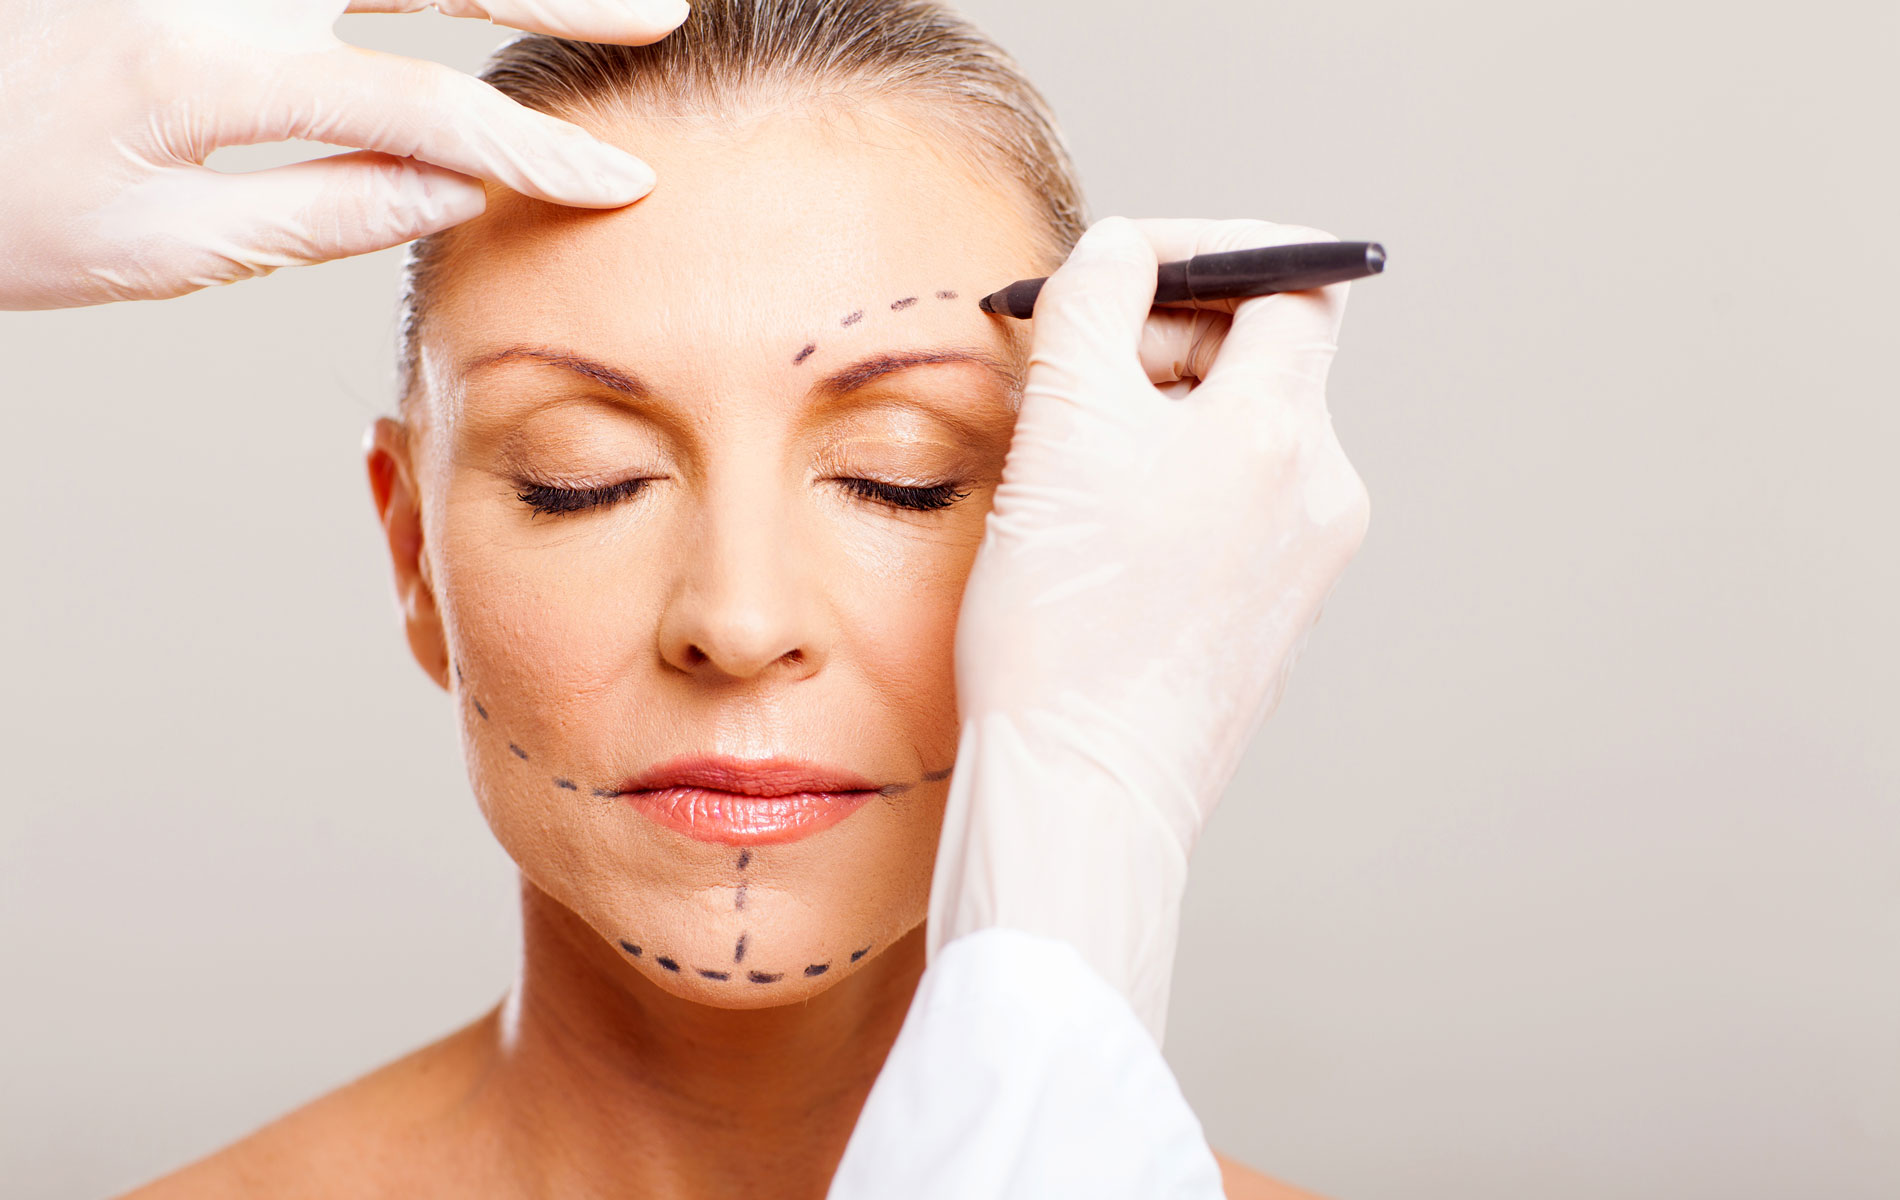 Face Lift/Rhytidectomy: What's Involved